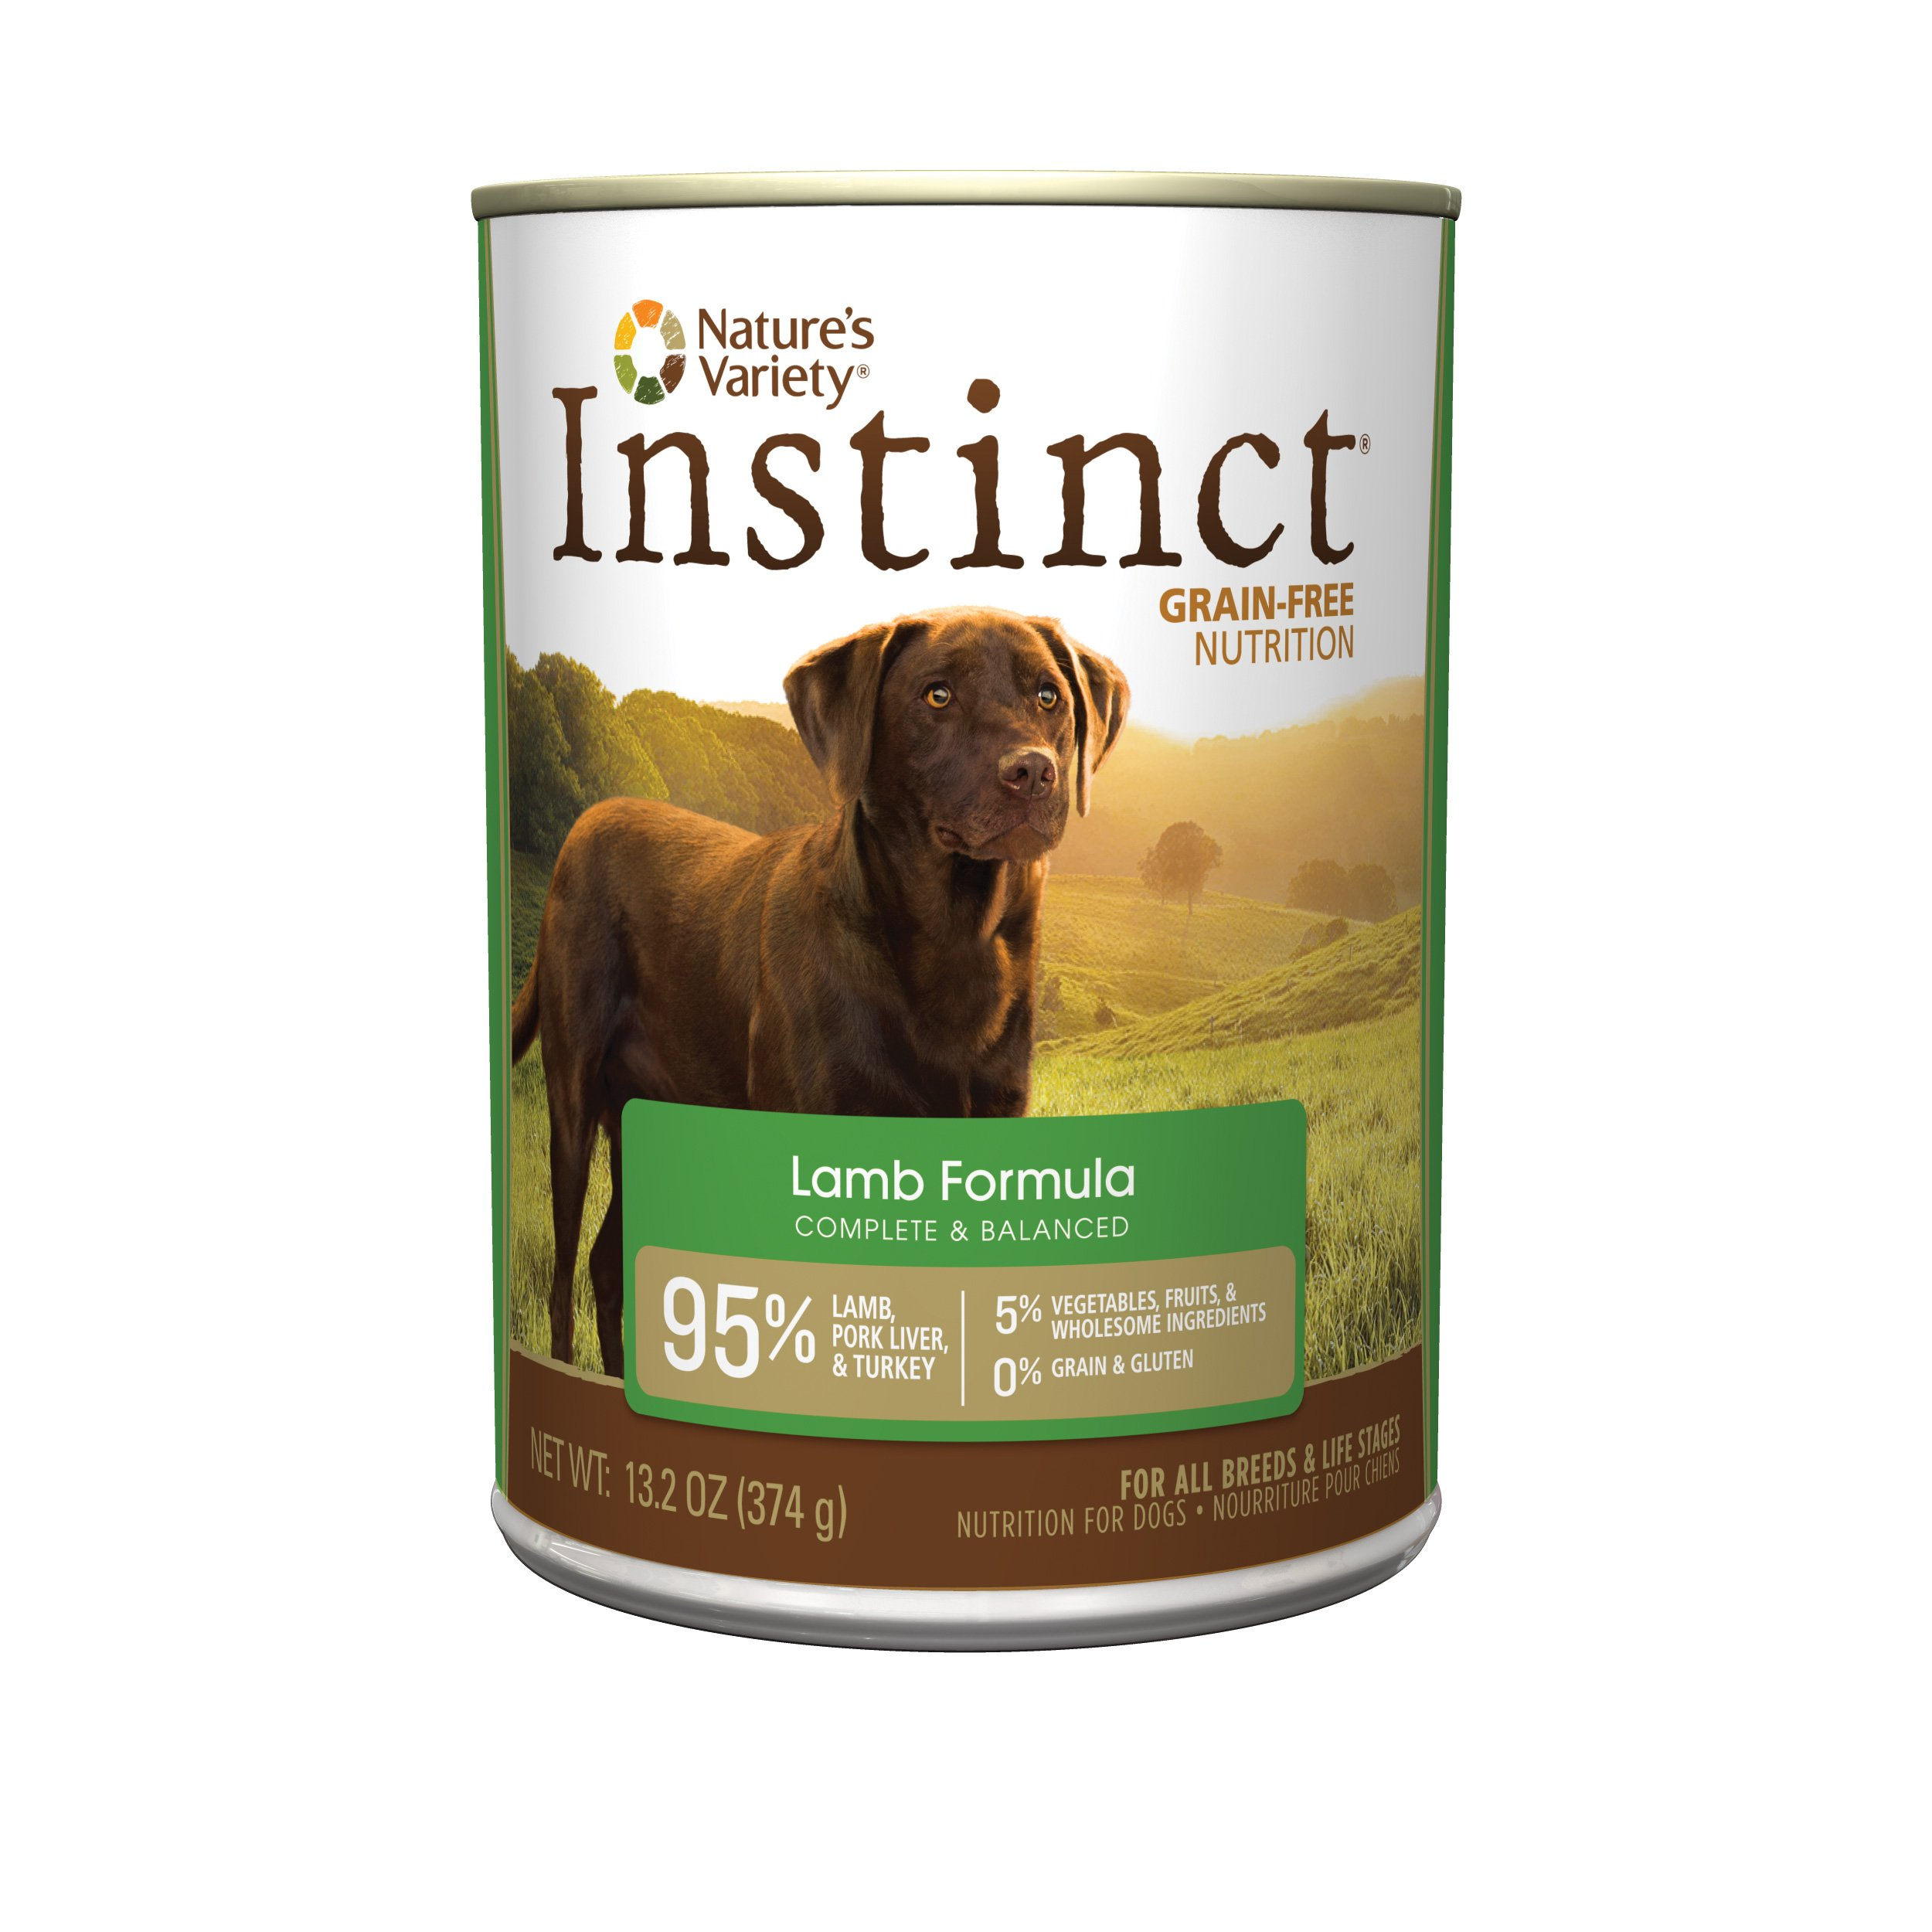 Nature'S Variety Instinct Grain Free Lamb Formula Natural Wet Canned Dog Food By, 13.2 Oz. Cans (Case Of 12) by Nature's Variety